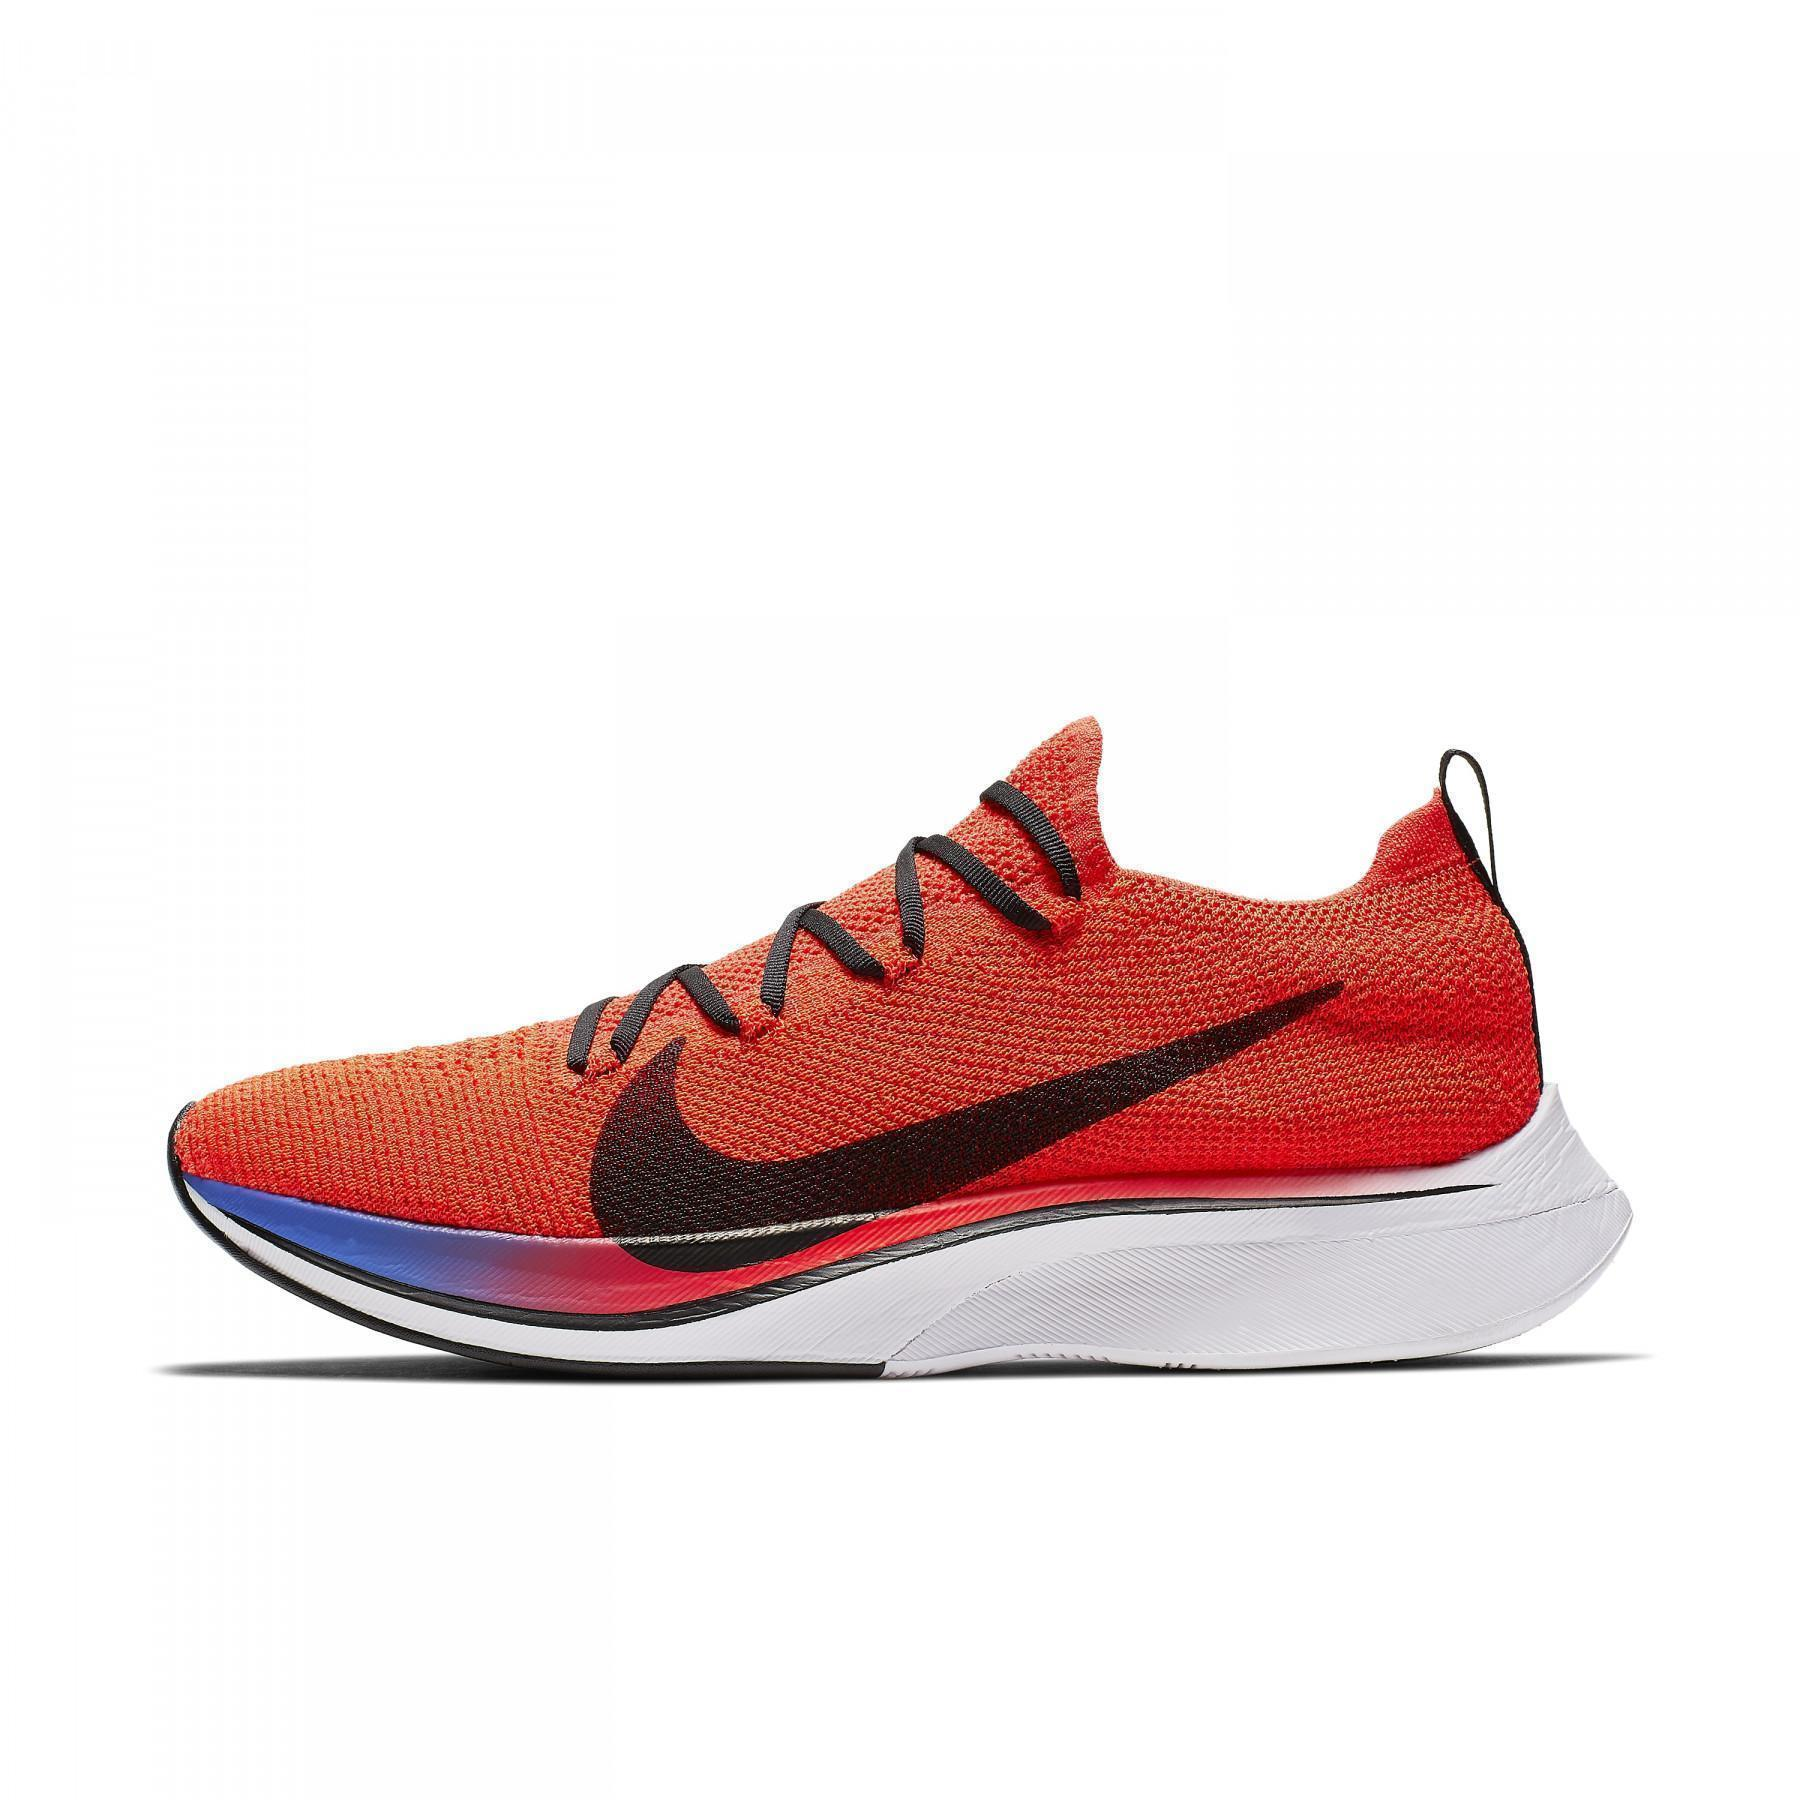 Chaussures Nike Flyknit VaporFly 4%